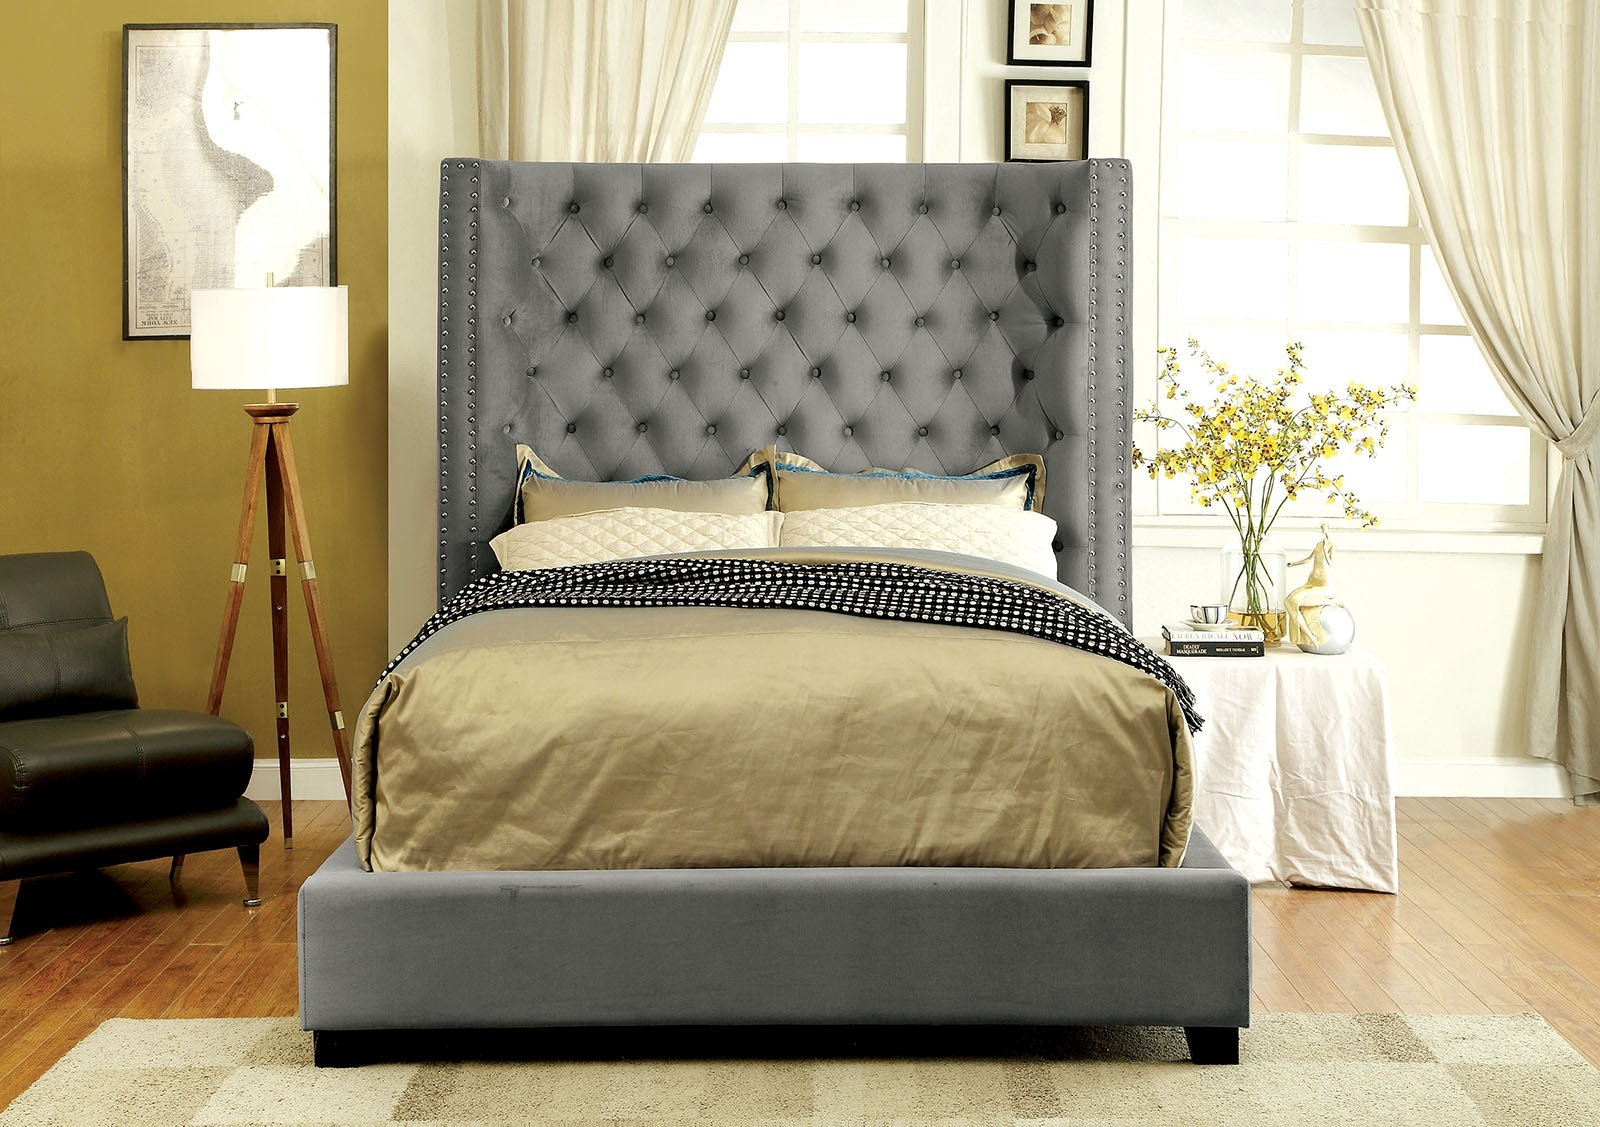 Gray Upholstered Bed With 70 Tufted Headboard